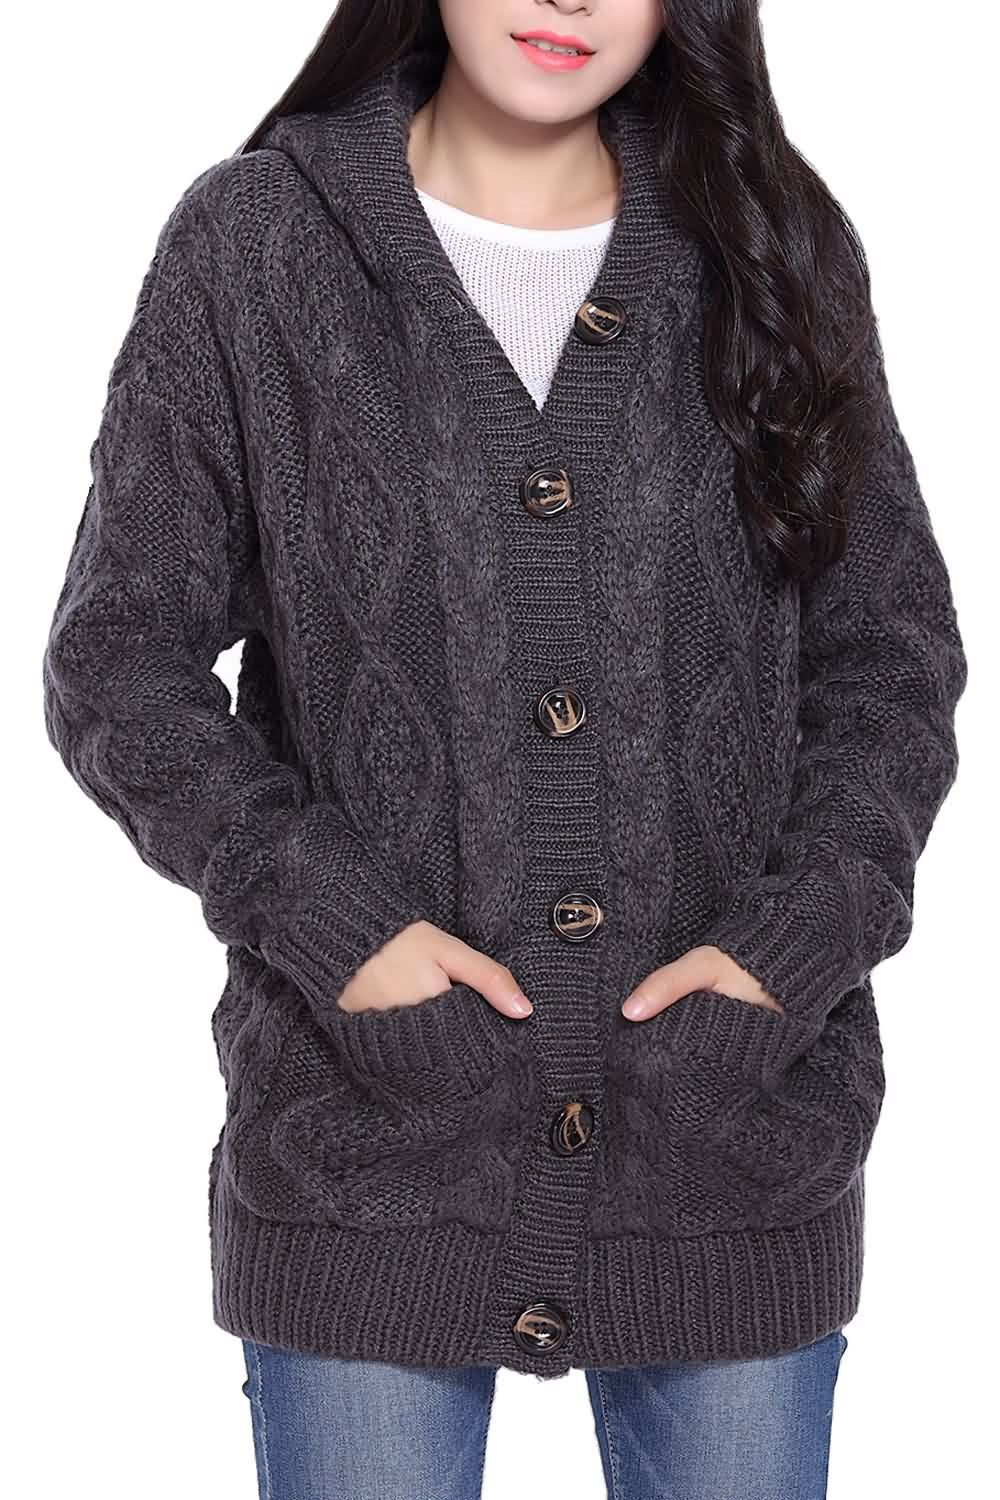 Cable Knit Hooded Cardigan | Hooded cardigan, Cable knitting and ...